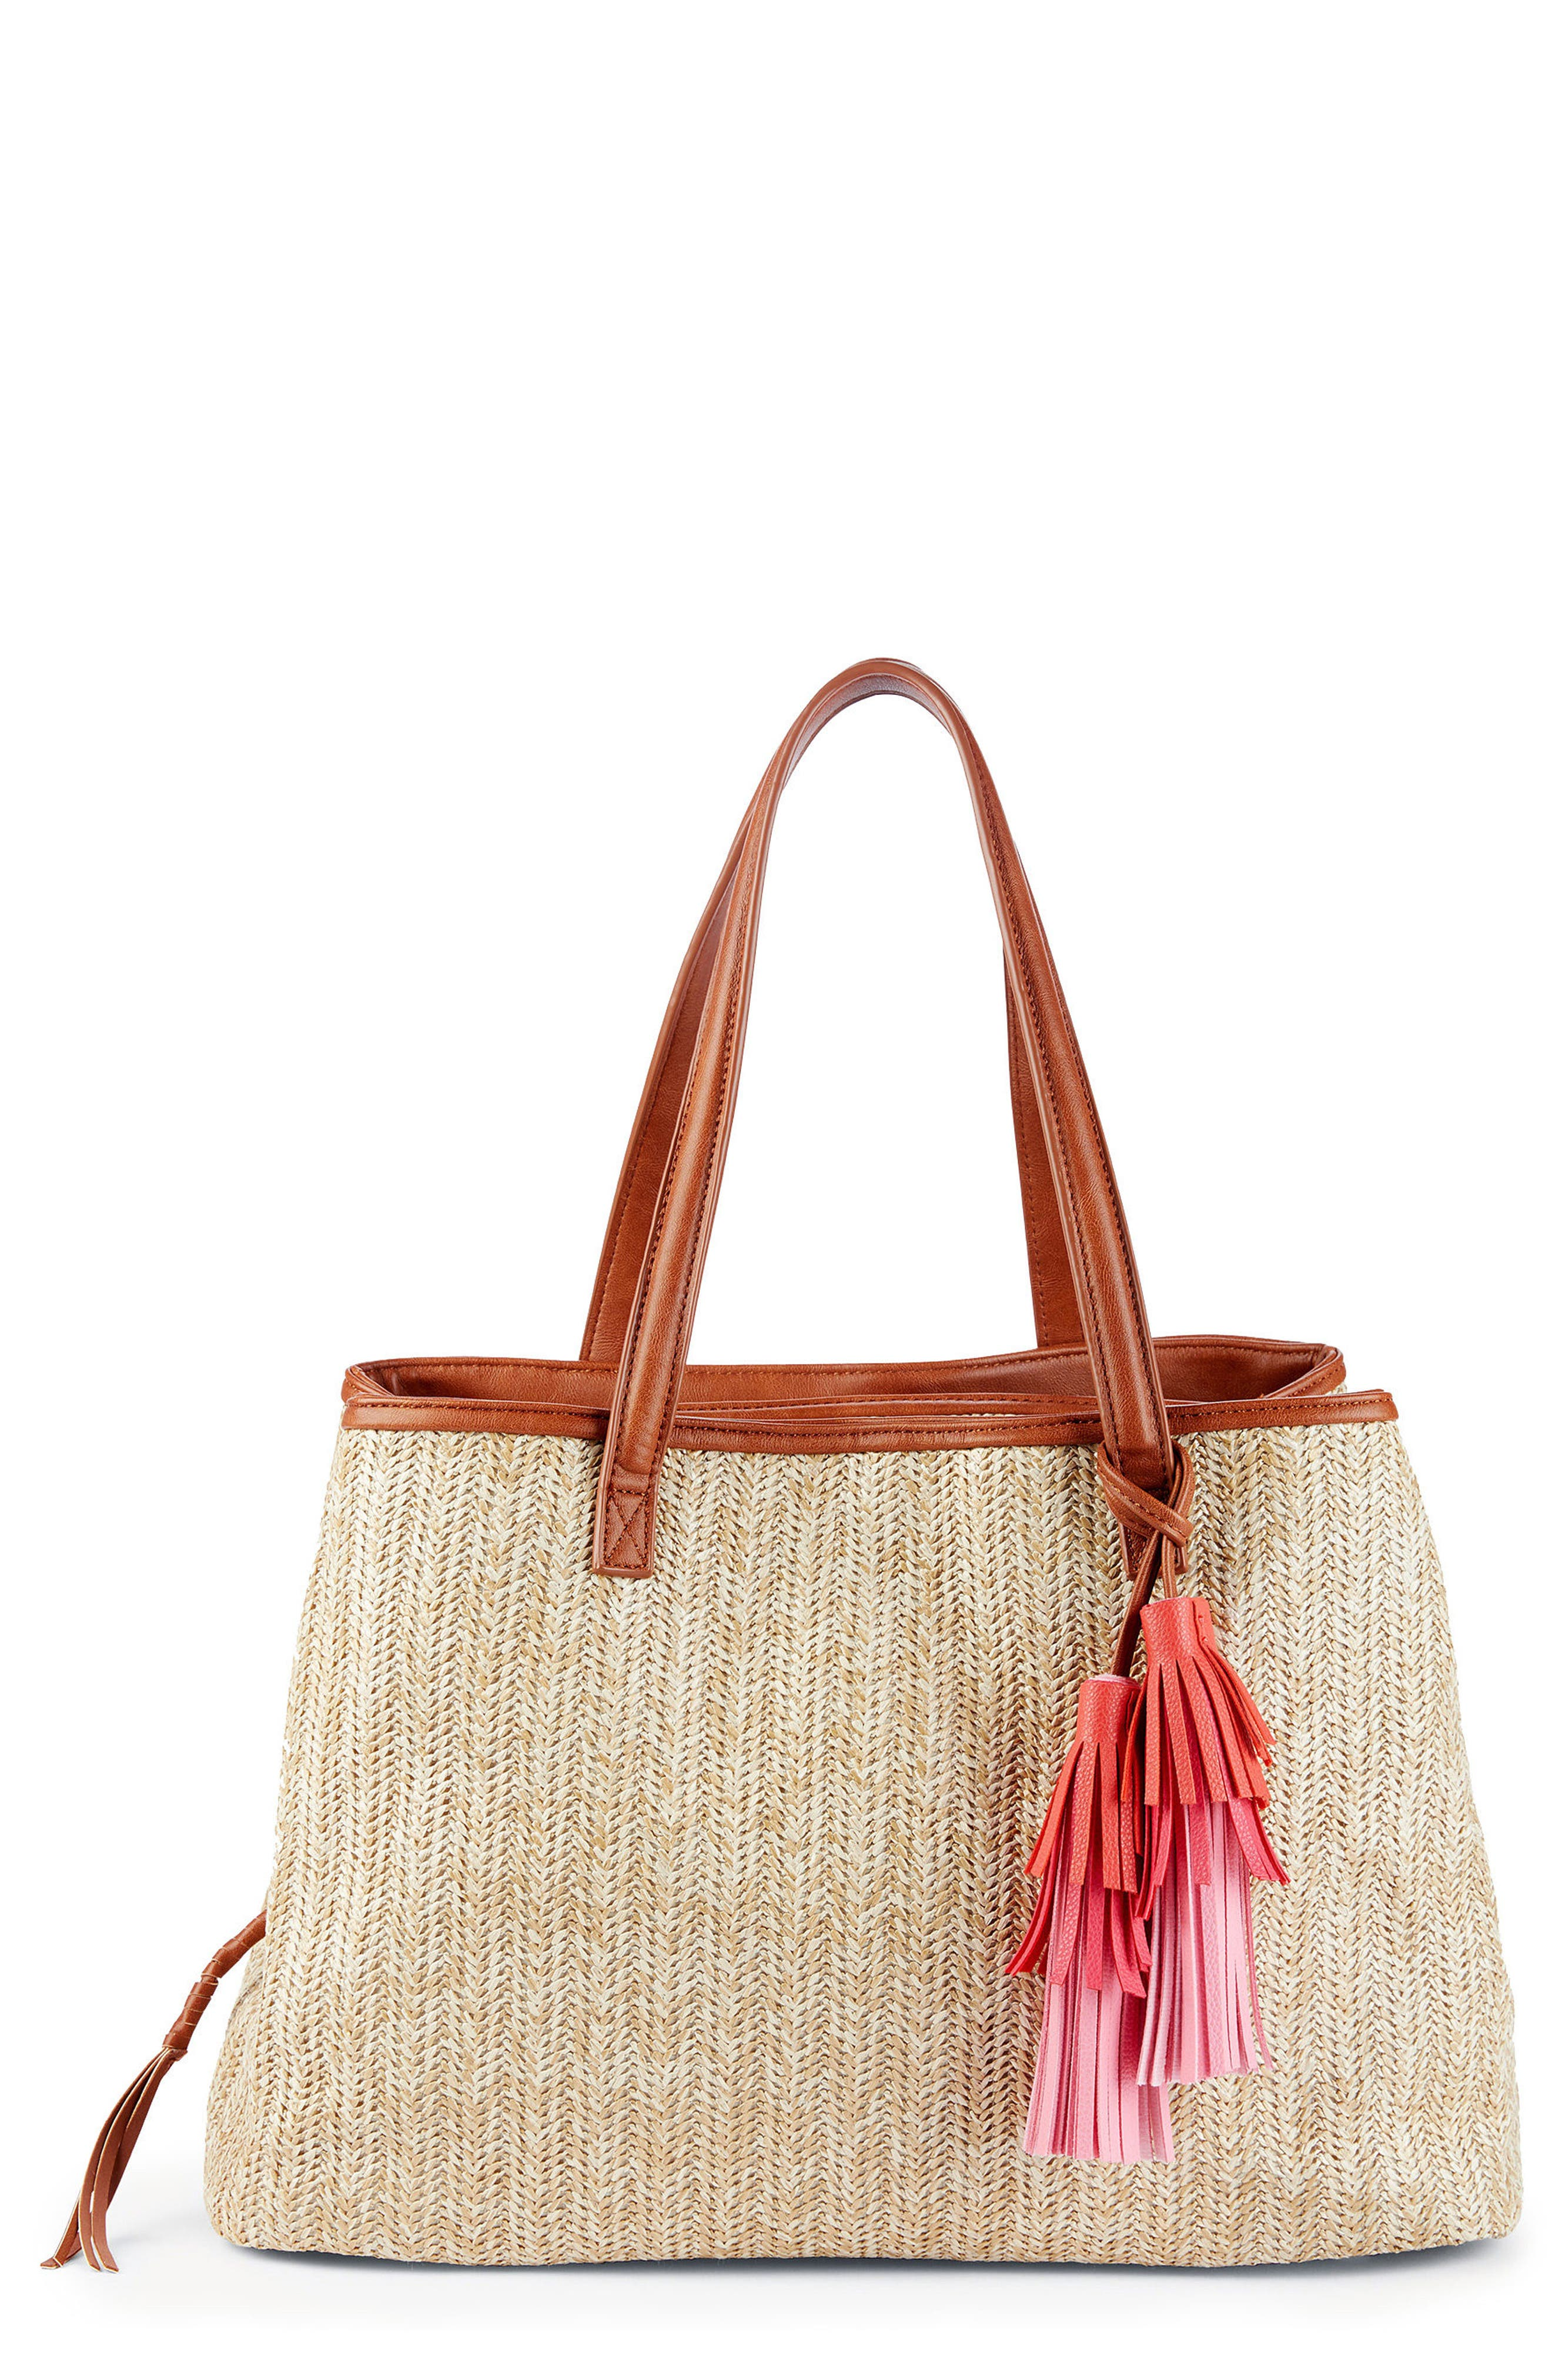 Pipper Faux Leather Tote,                         Main,                         color, 250